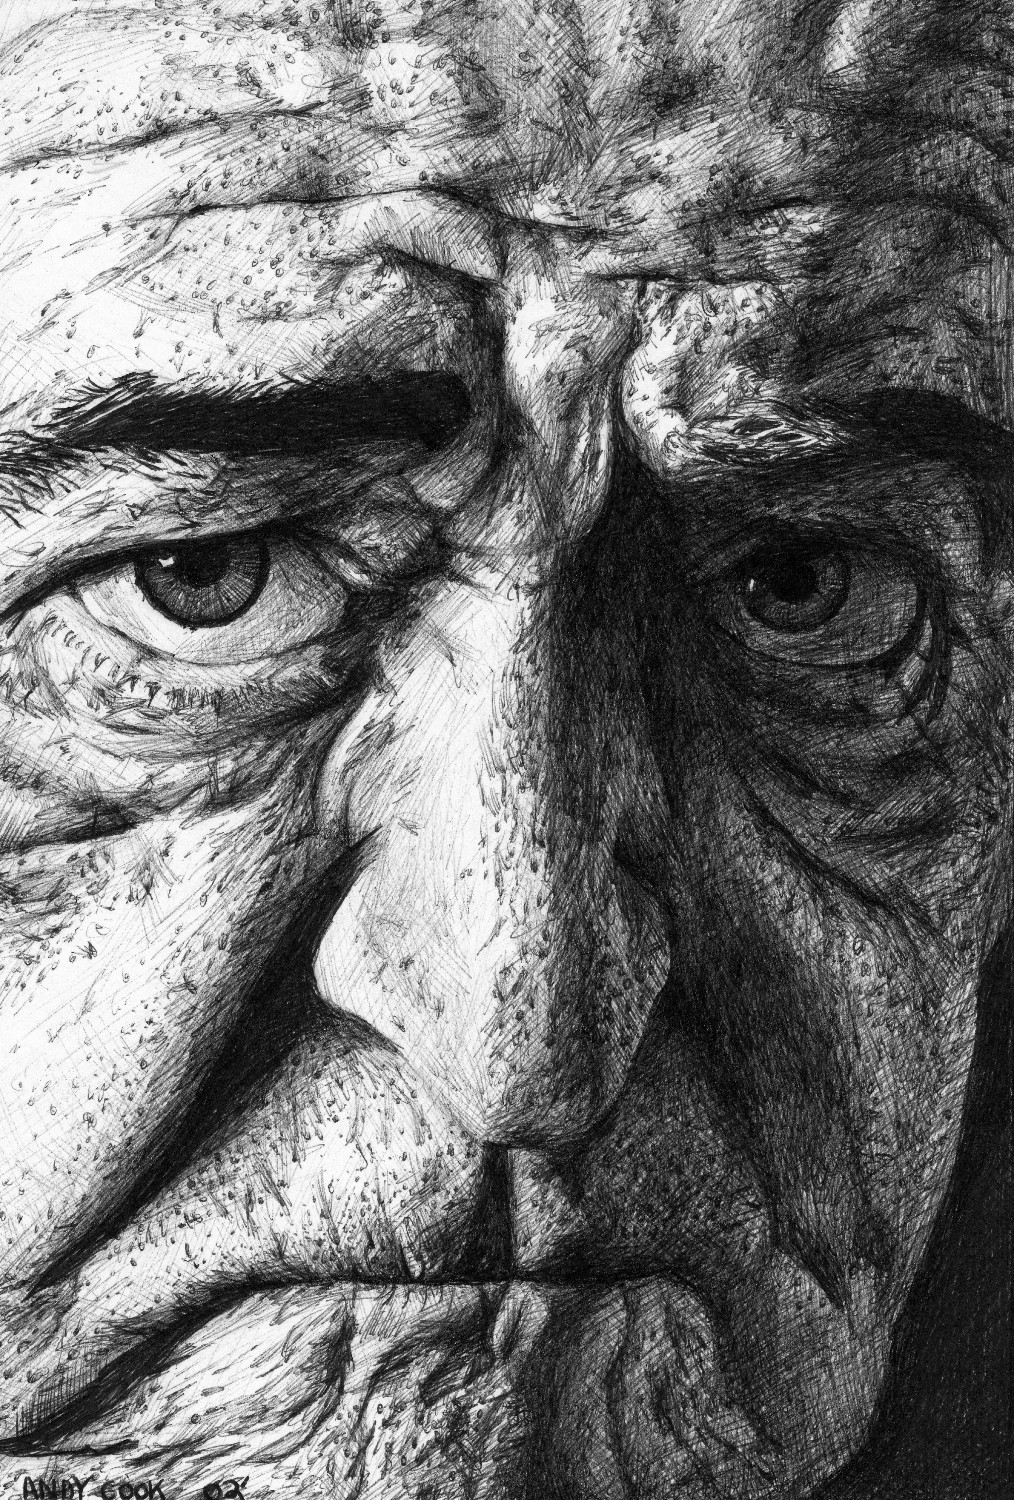 """Old Man"" by Andy Cook, 8x10in, ball point pen (2016)"